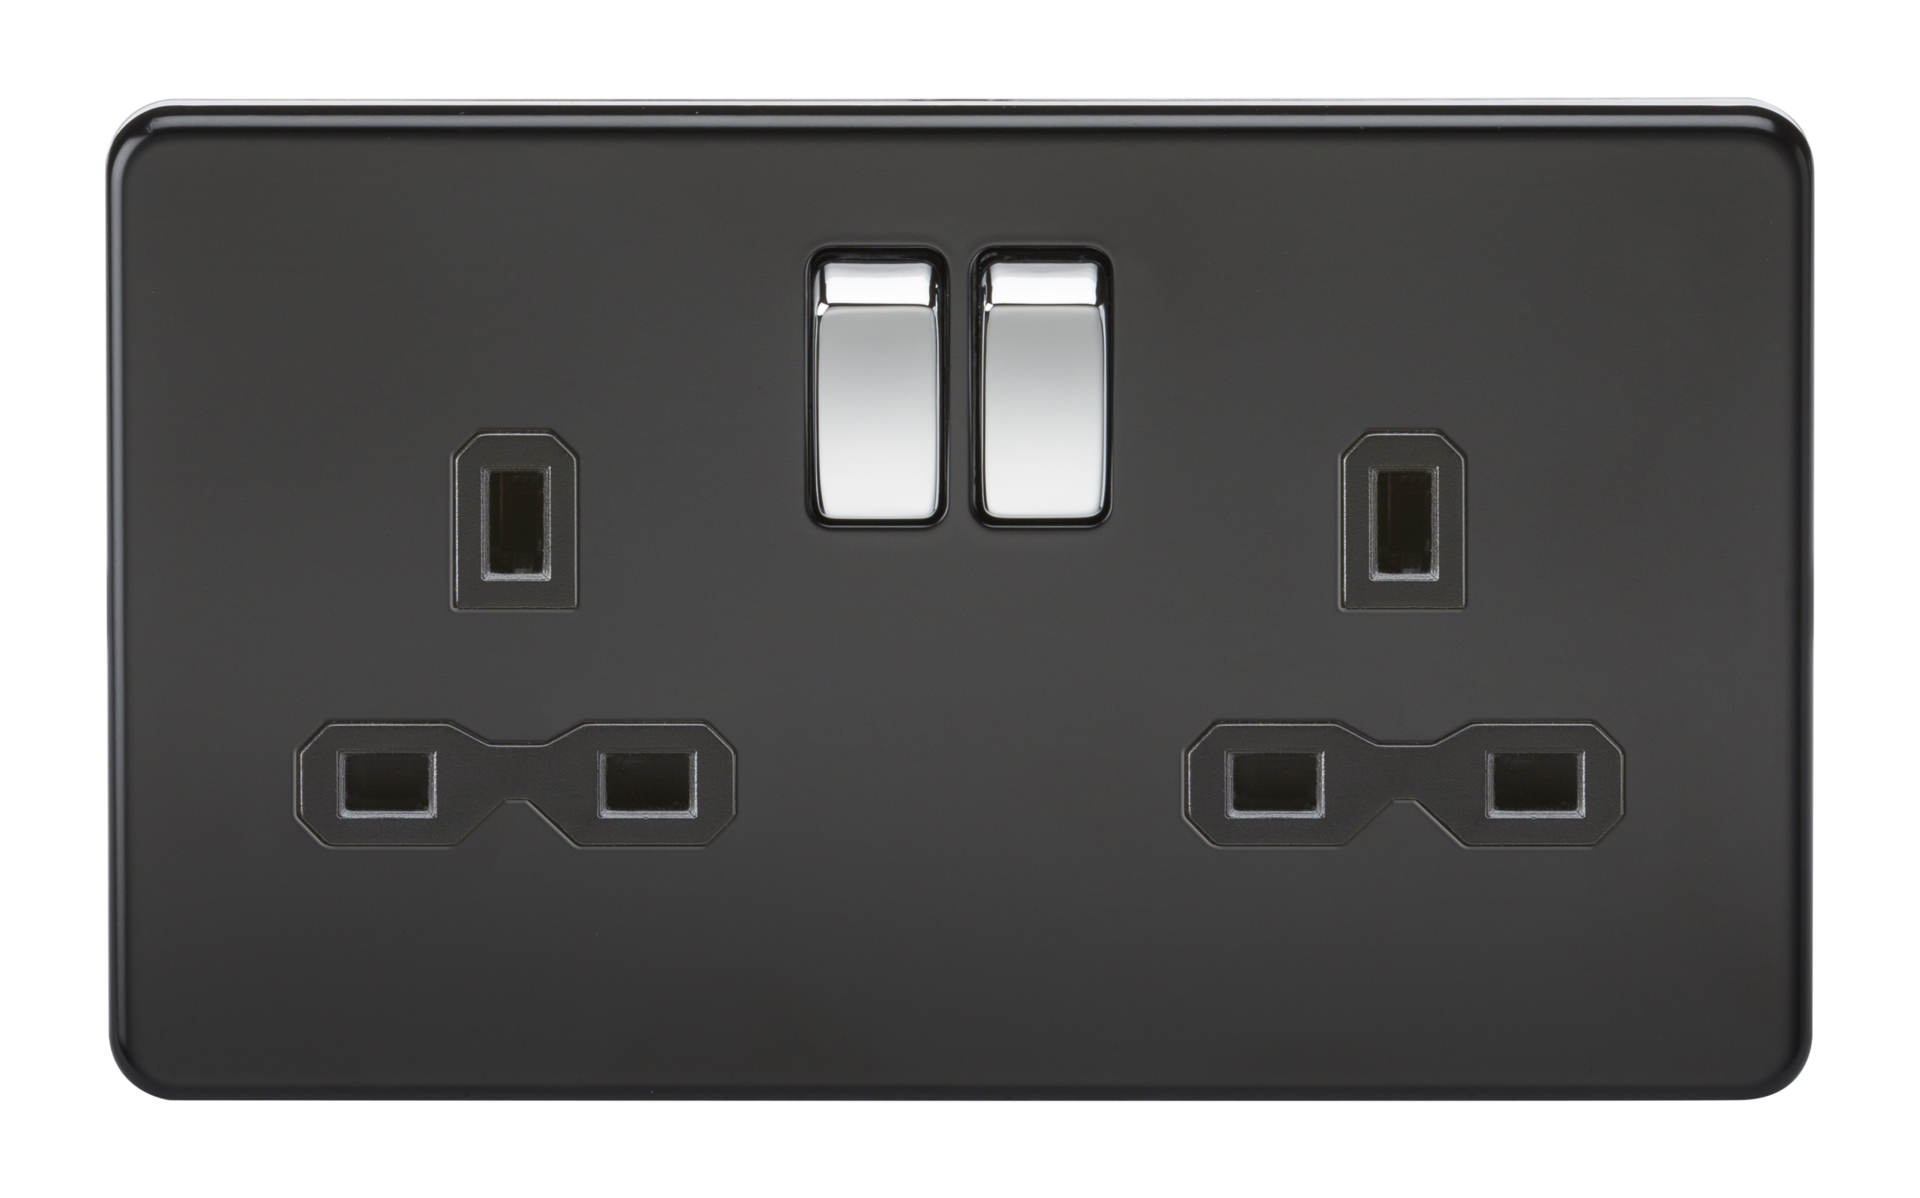 SCREWLESS 13A 2G DP SWITCHED SOCKET - MATT BLACK W/CHROME ROCKER